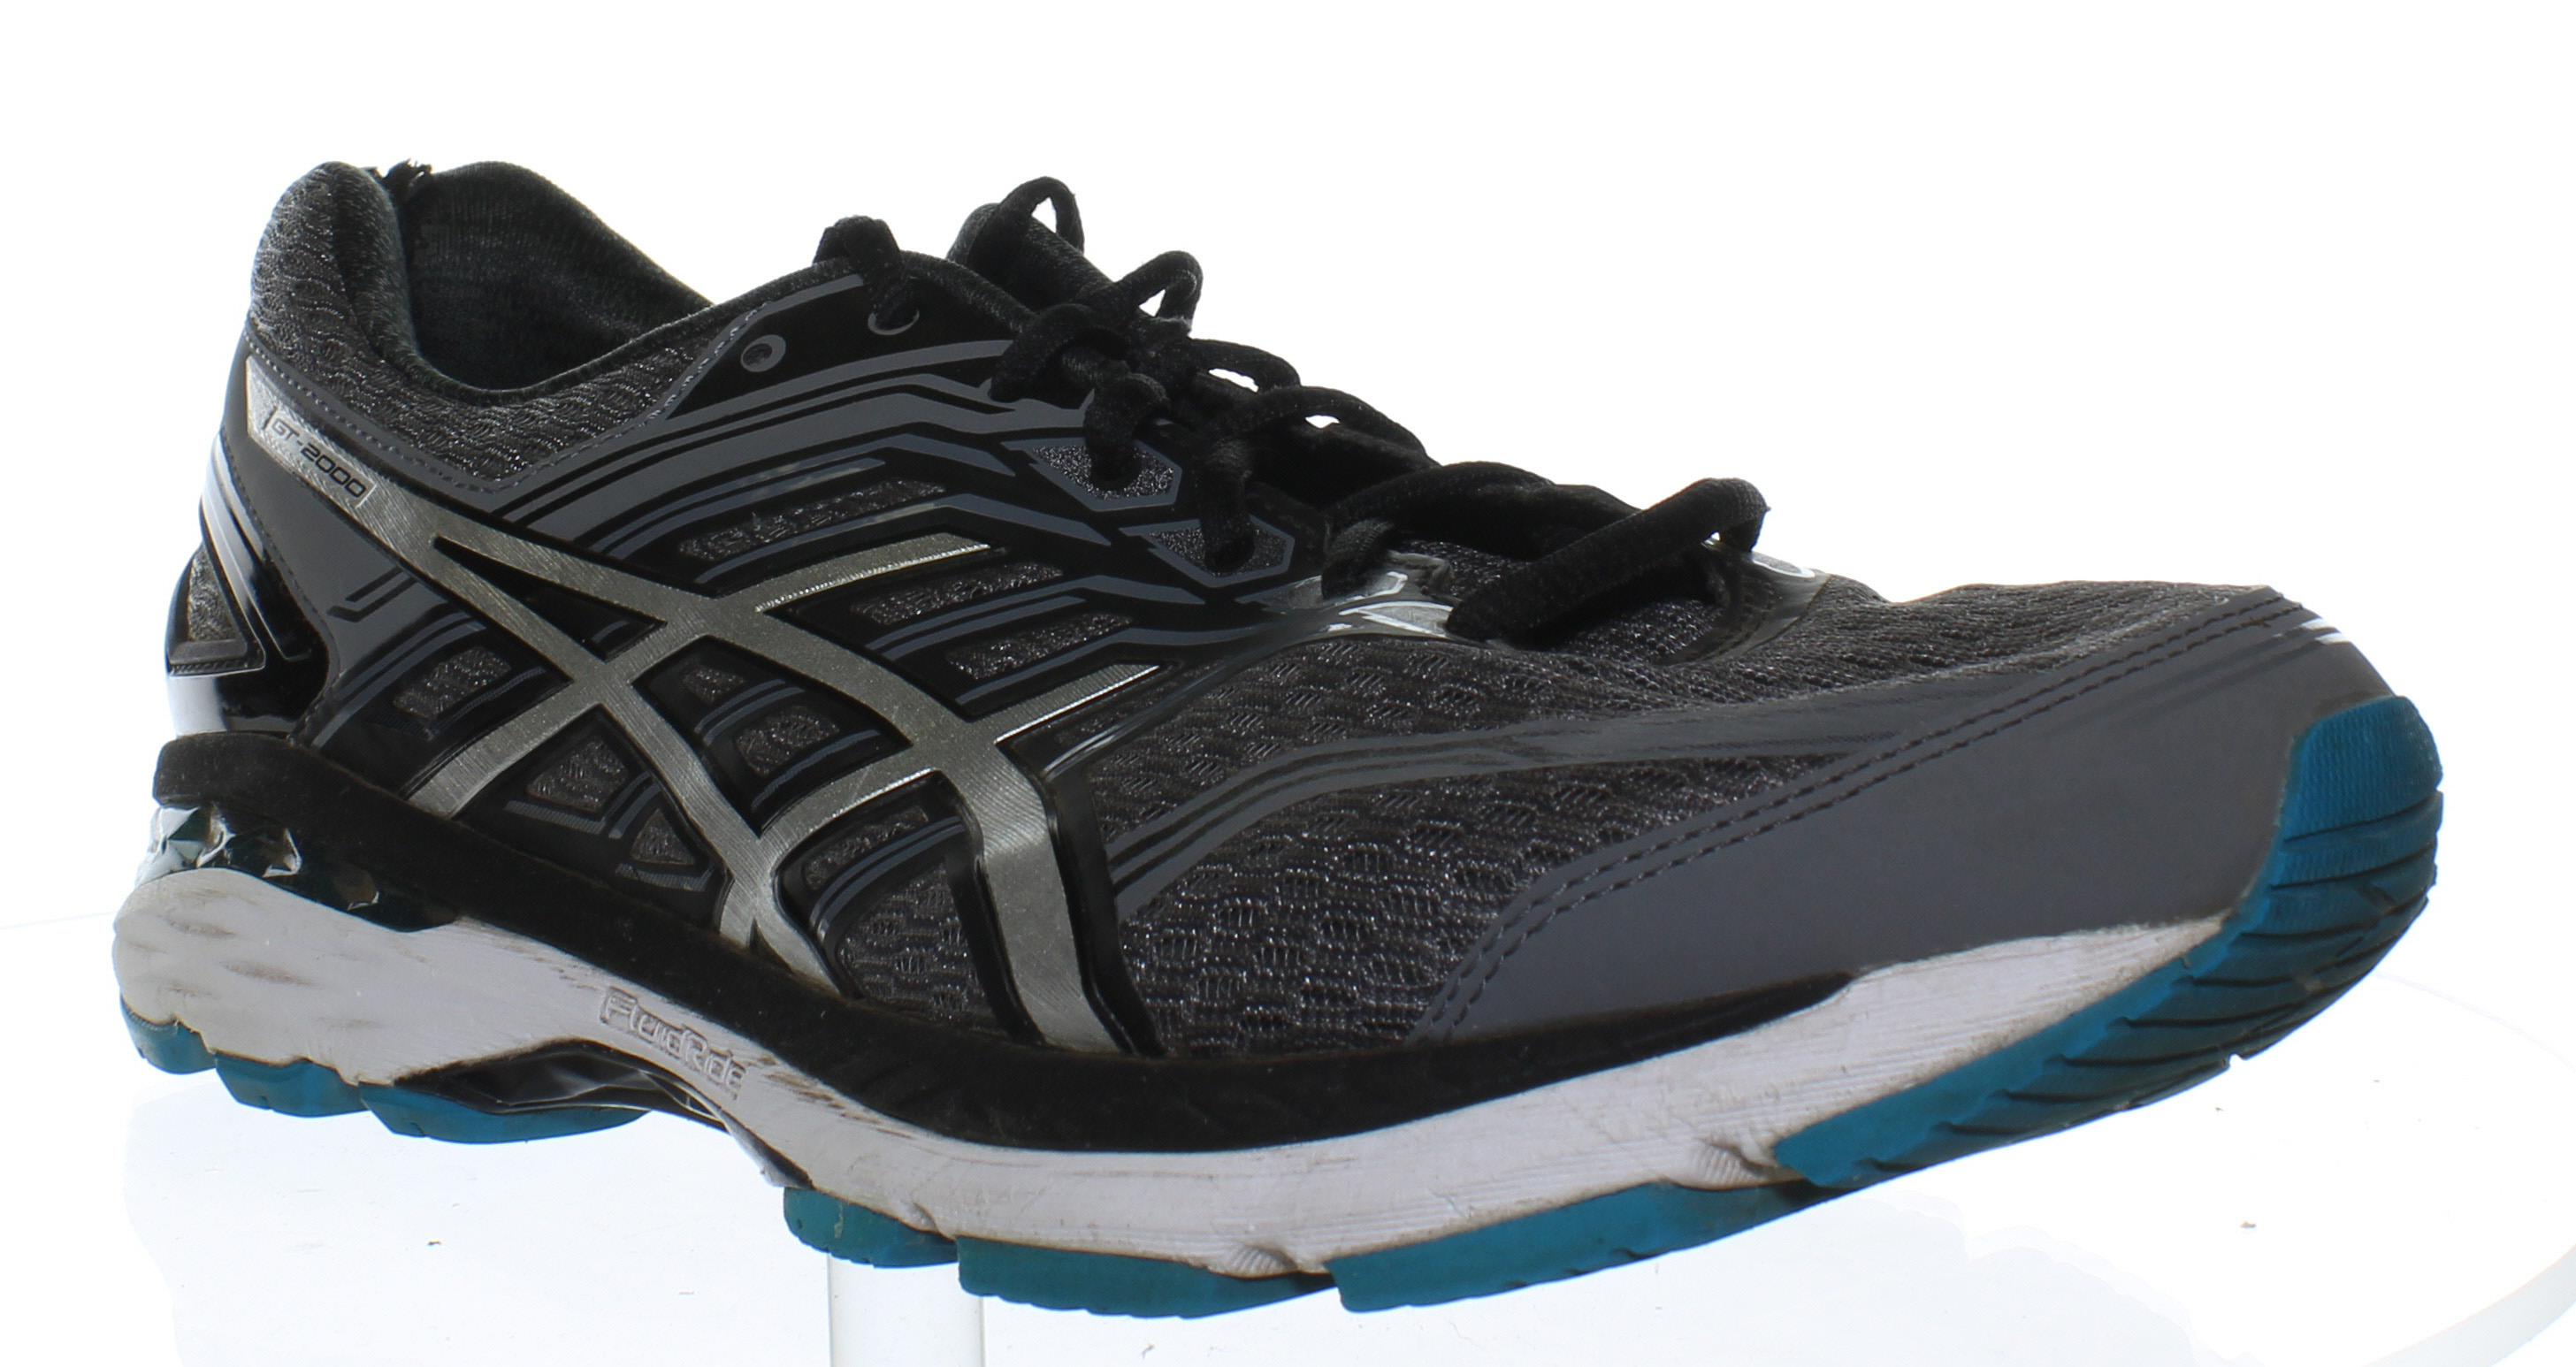 ASICS-Mens-Gray-Running-Shoes-Size-10-353138